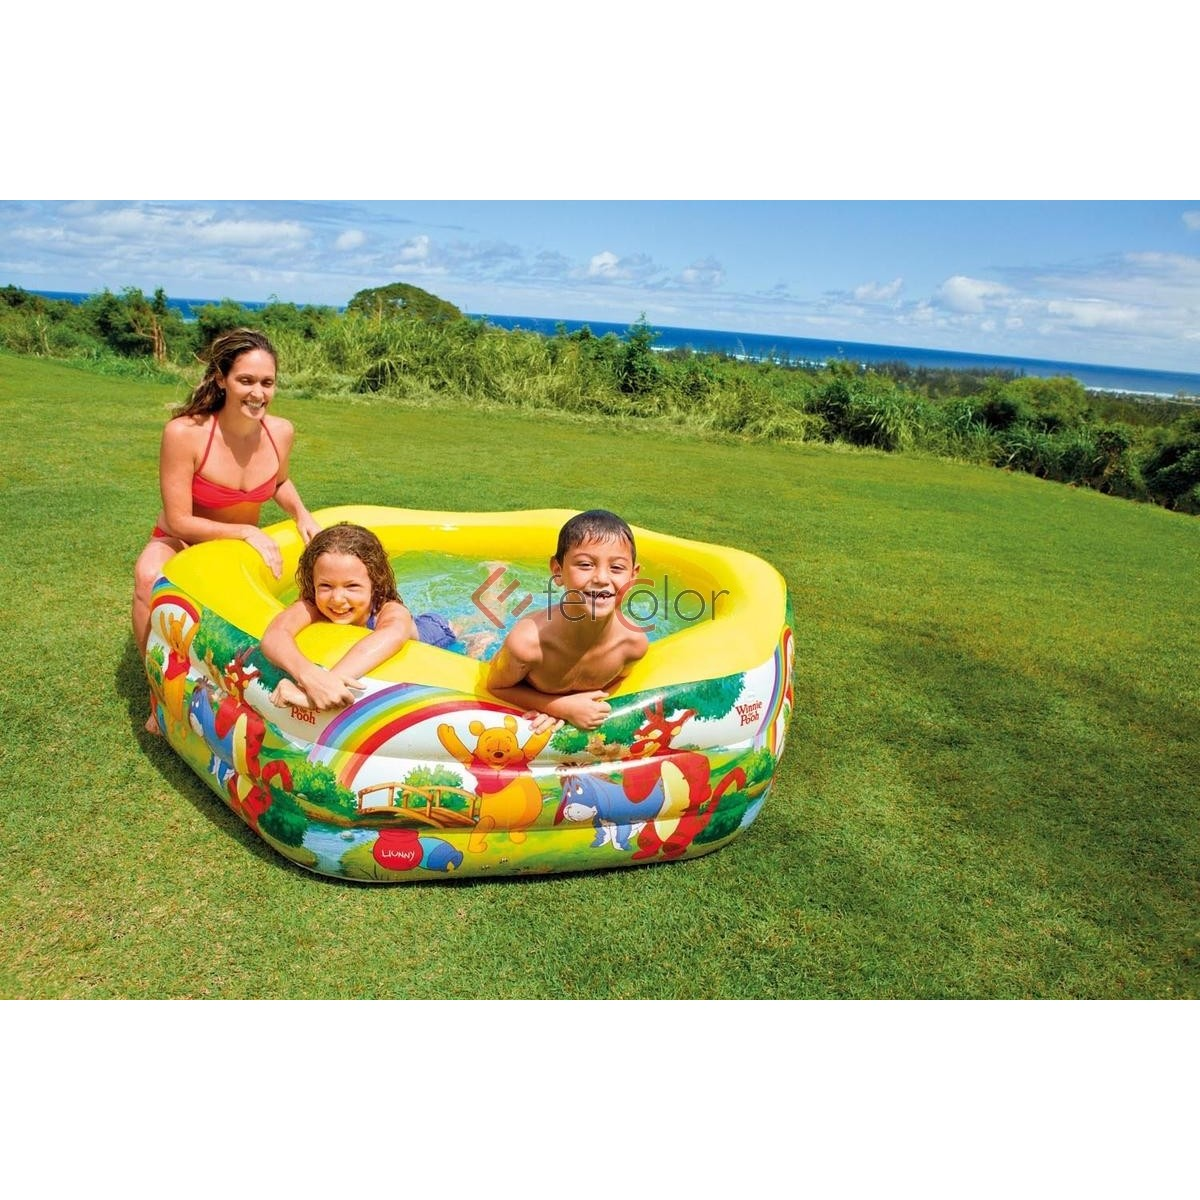 Intex Piscina Gonfiabile Piscina Gonfiabile Esagonale Intex Bambini Winnie The Pooh